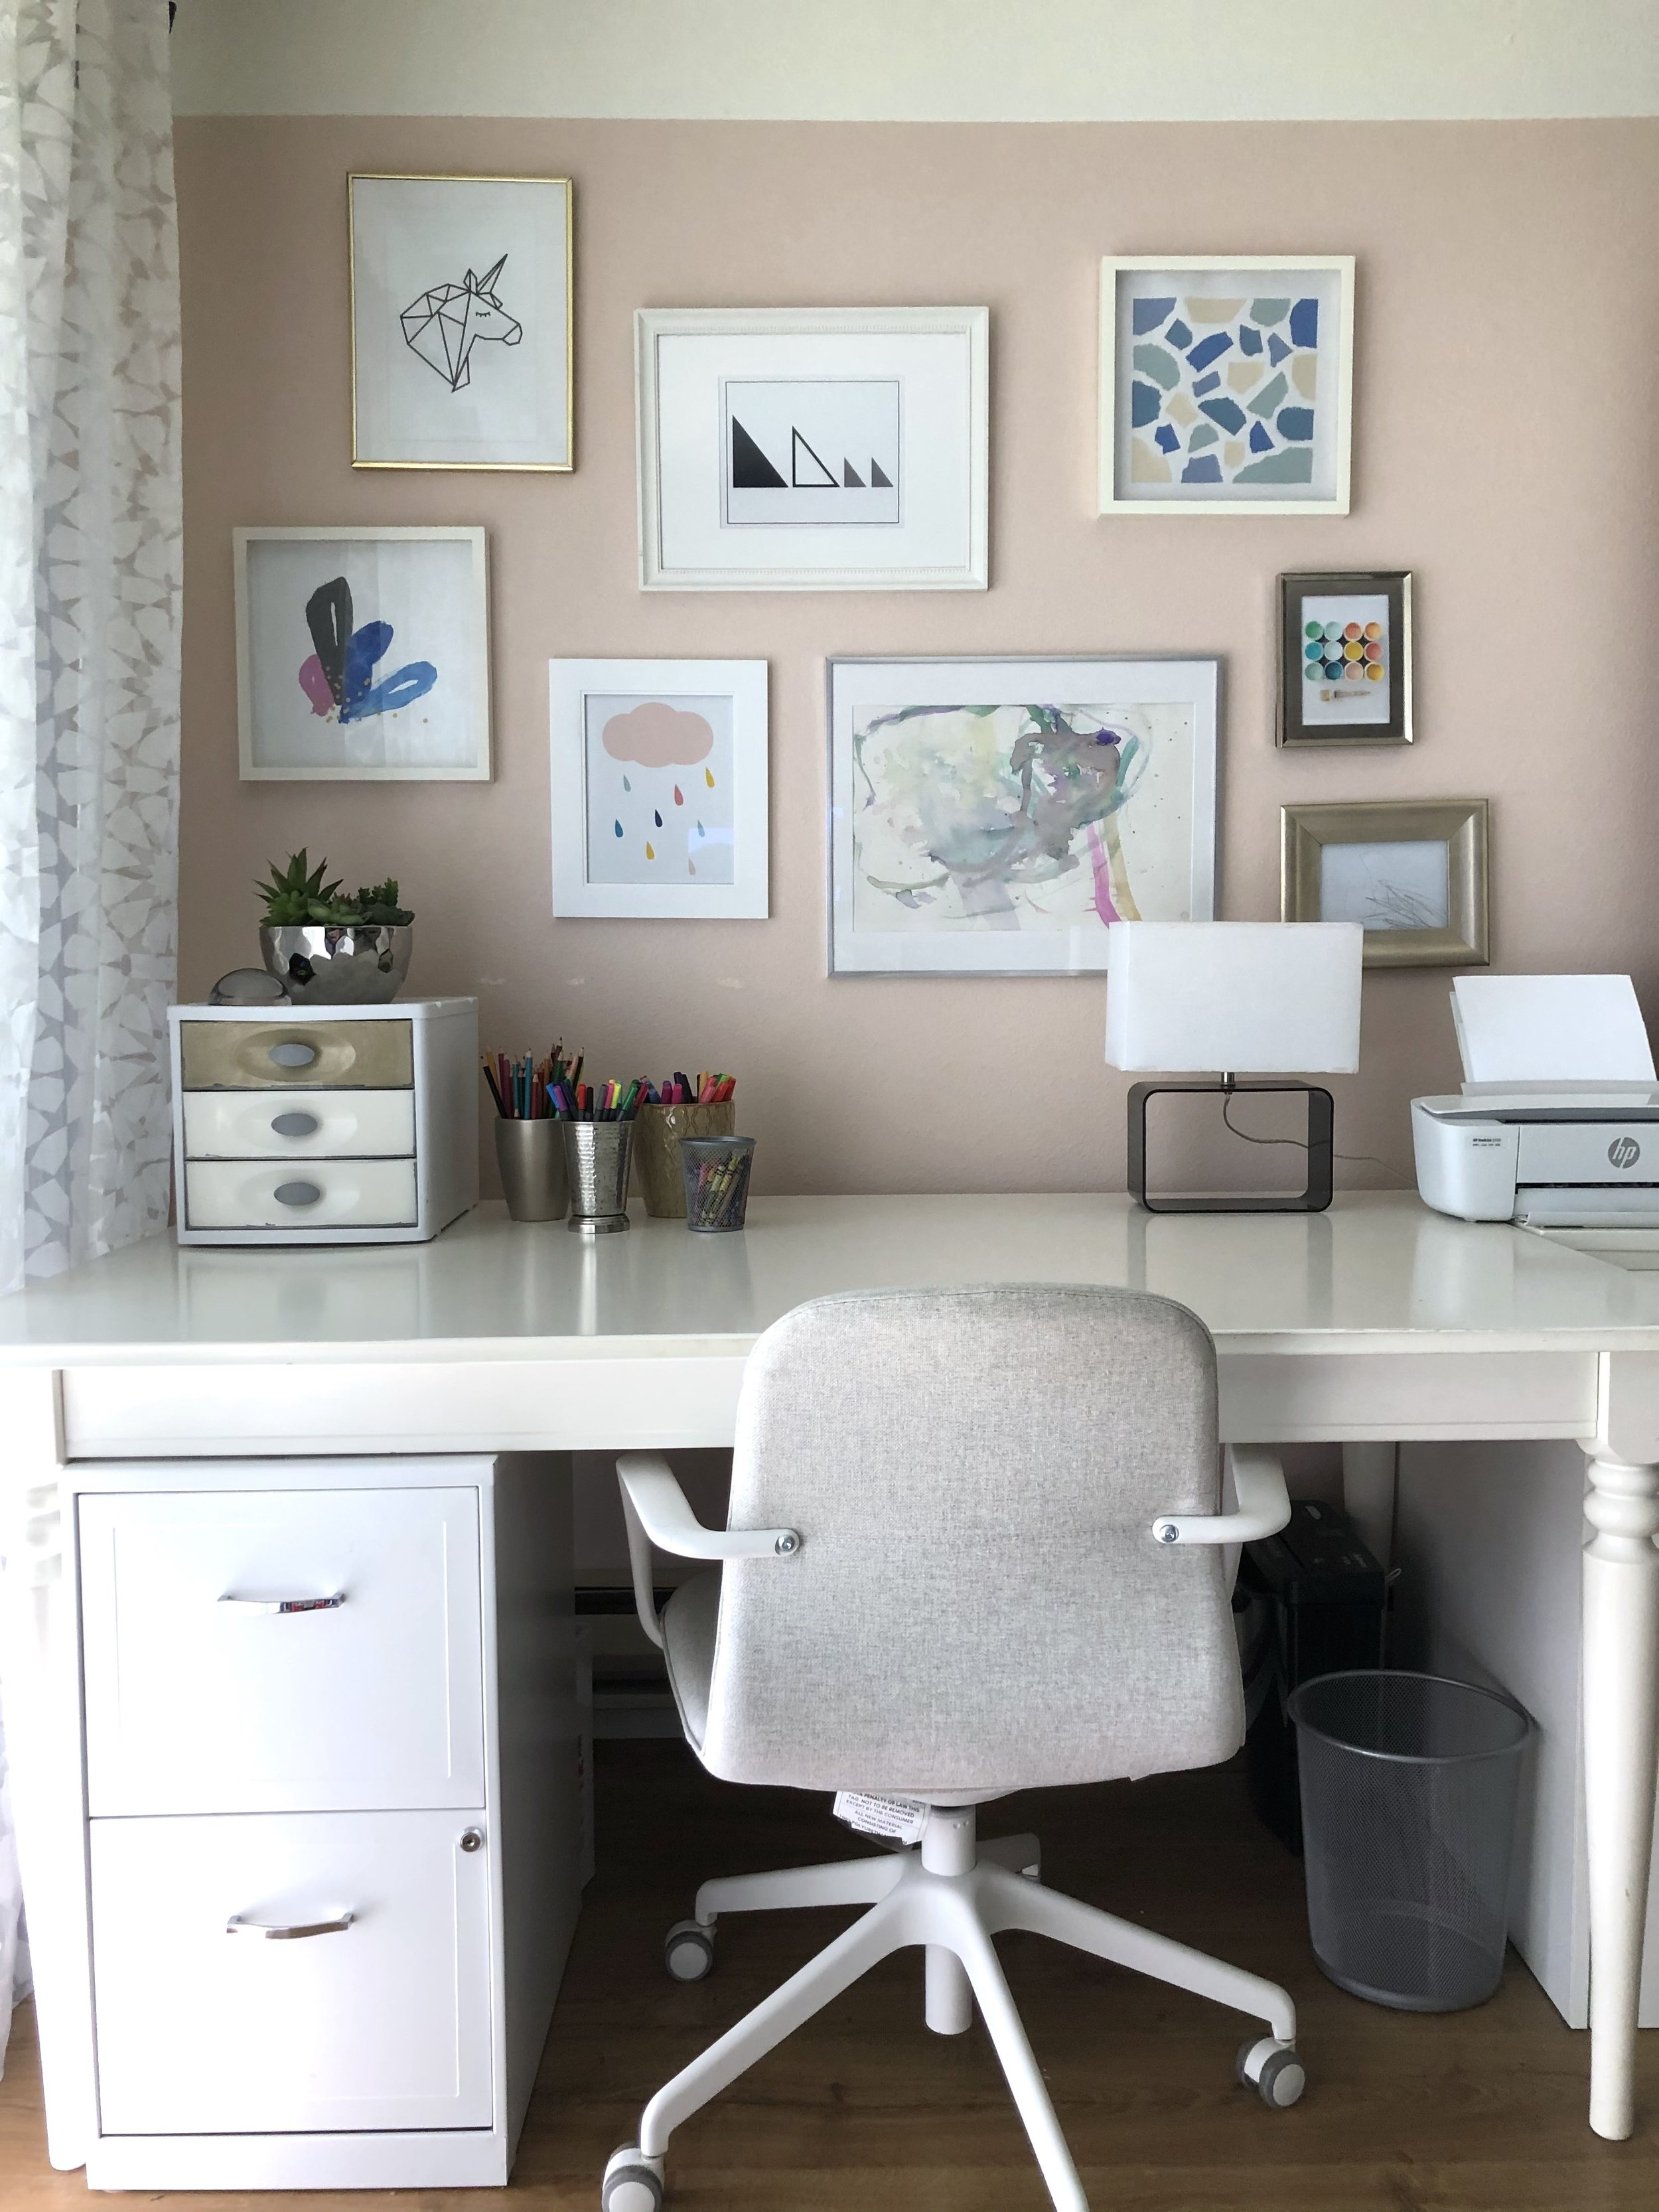 $100 Room Challenge, Wk 4: My Workspace- The Reveal